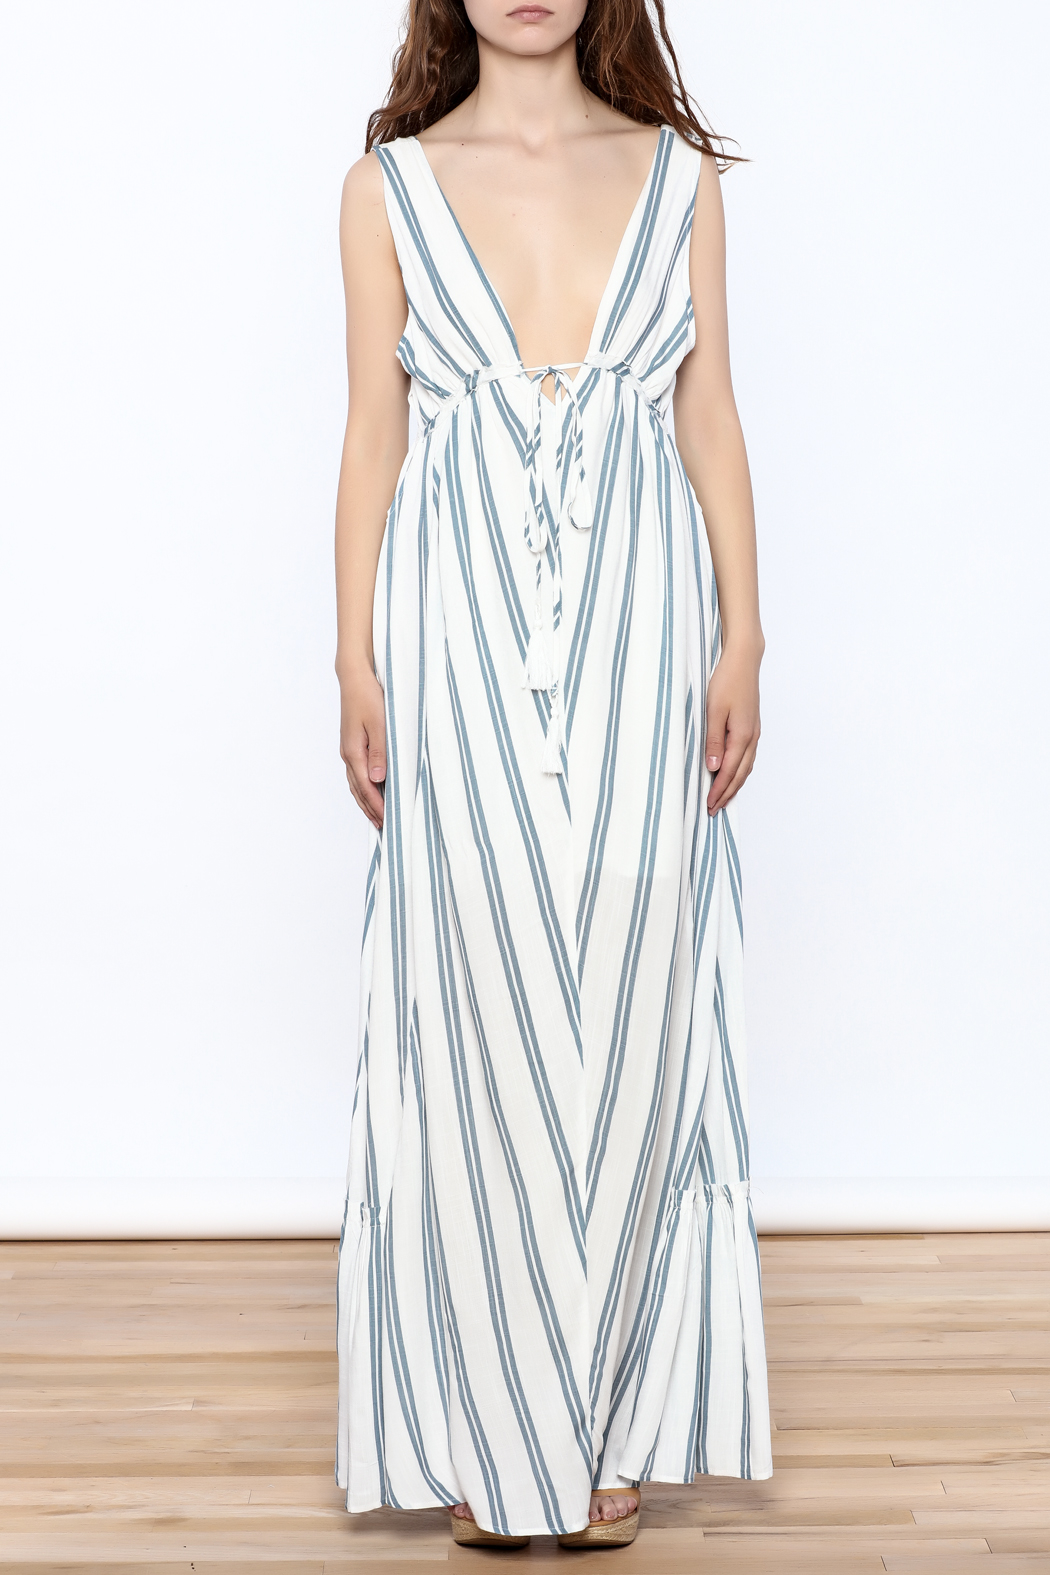 Hommage Stripe Flowy Maxi Dress - Front Cropped Image